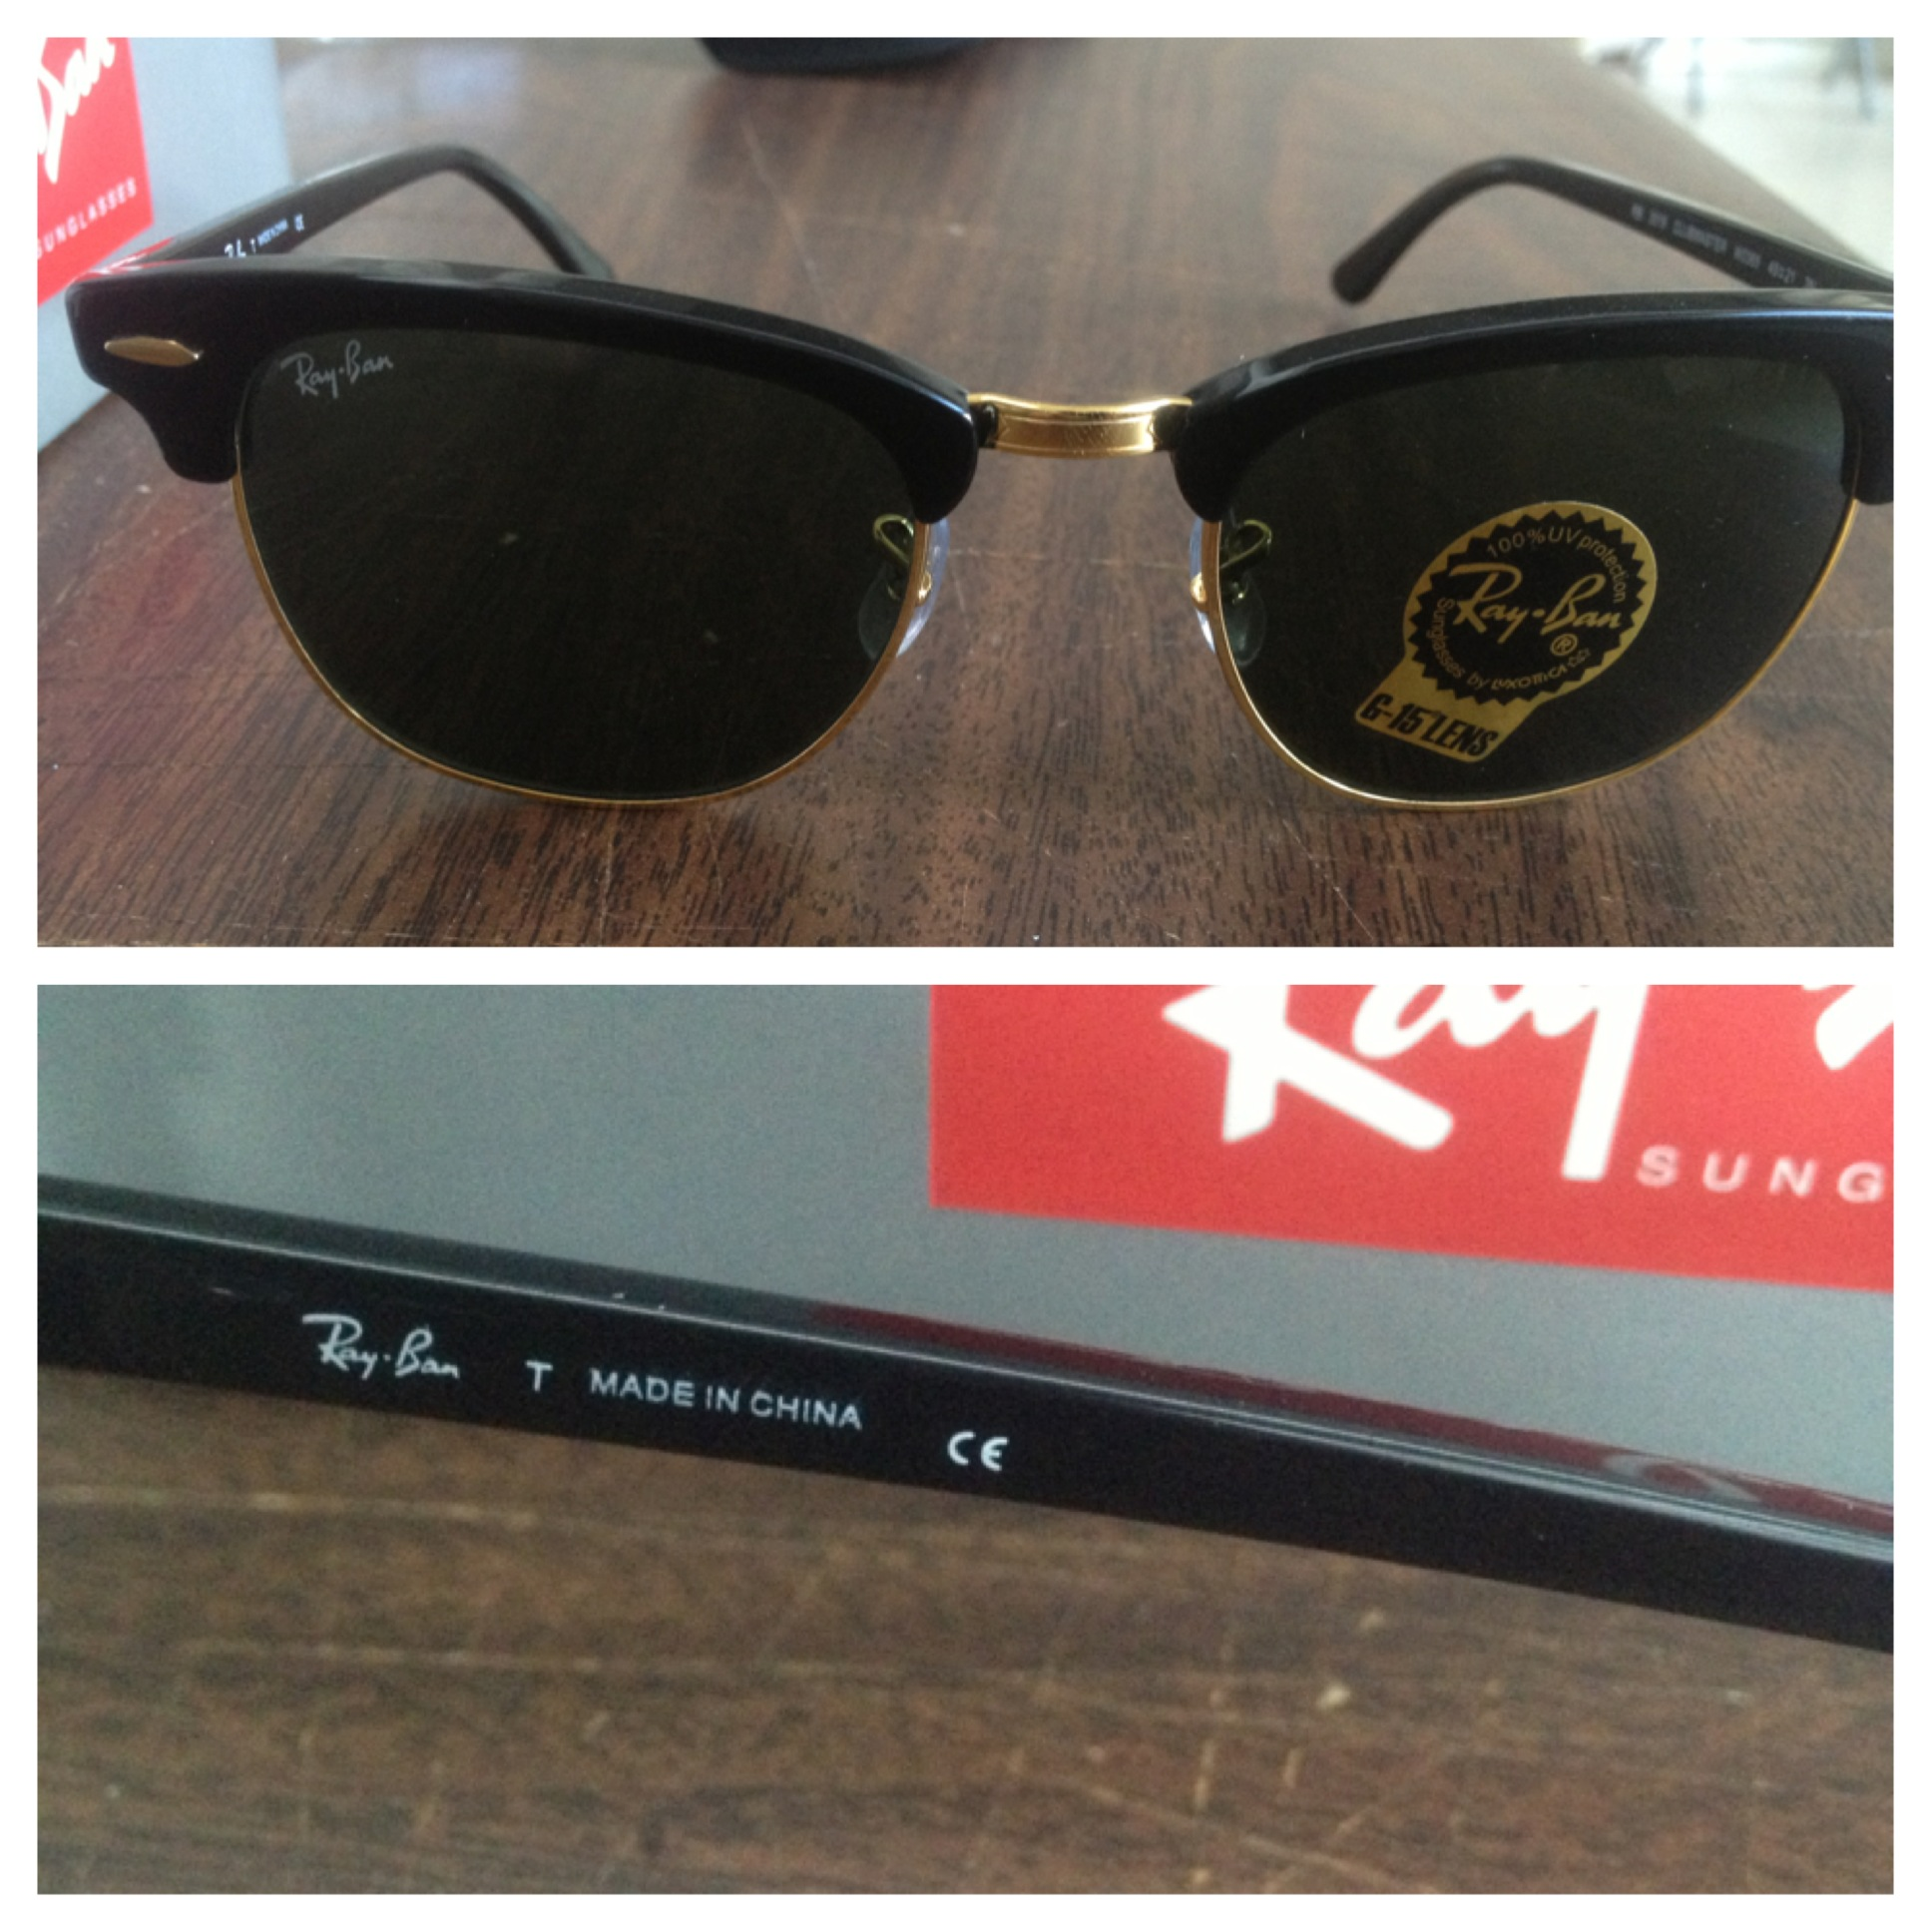 ray-ban clubmasters made in china